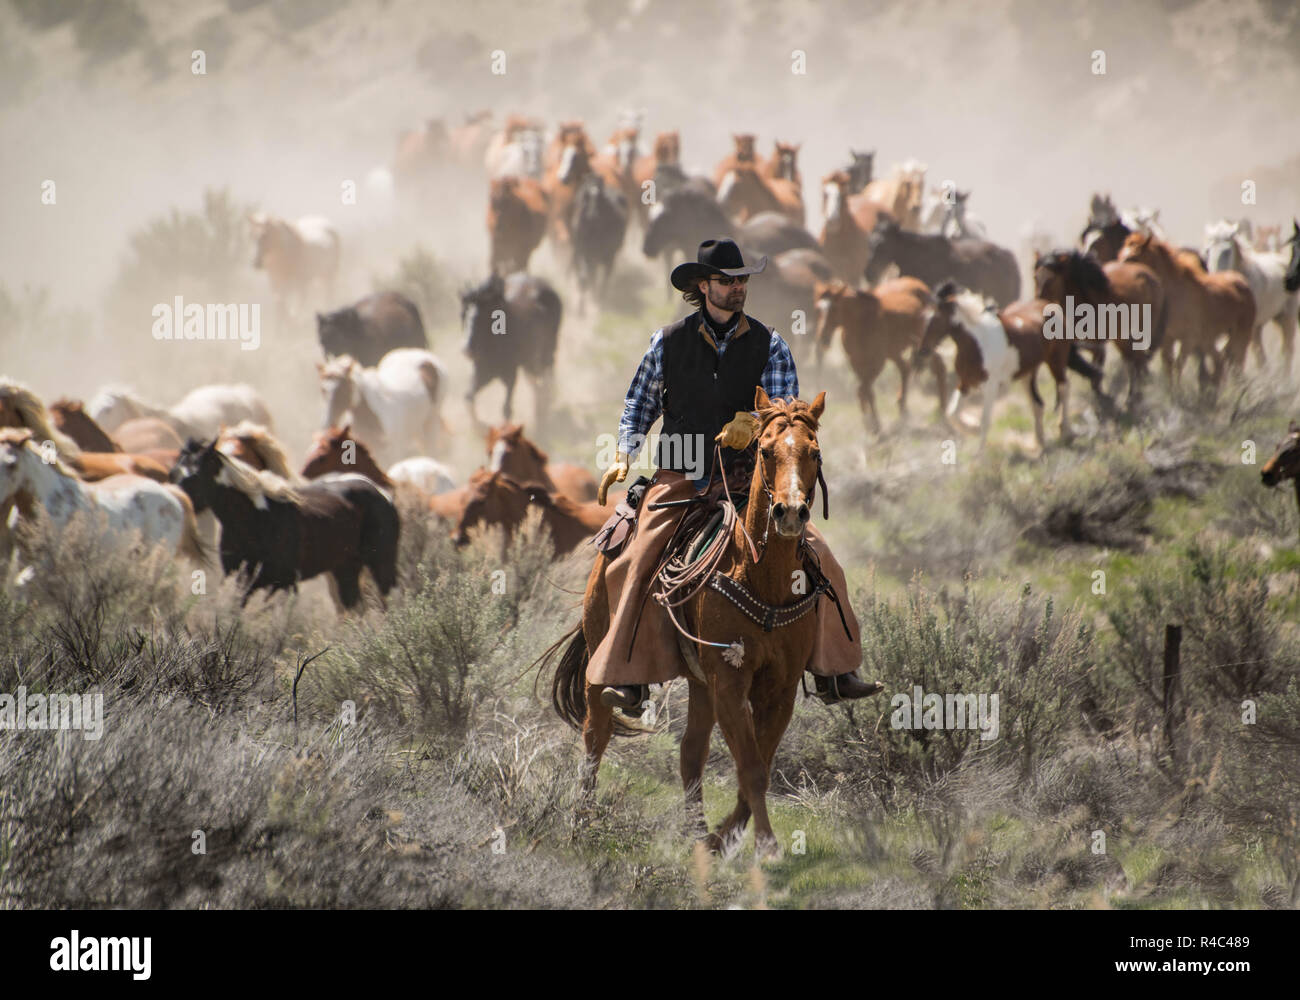 Cowboy wrangler ranch hand riding sorrel horse at a gallop rounding up herd of running horses during trail drive, Craig, CO, USA May 5, 2018 - Stock Image